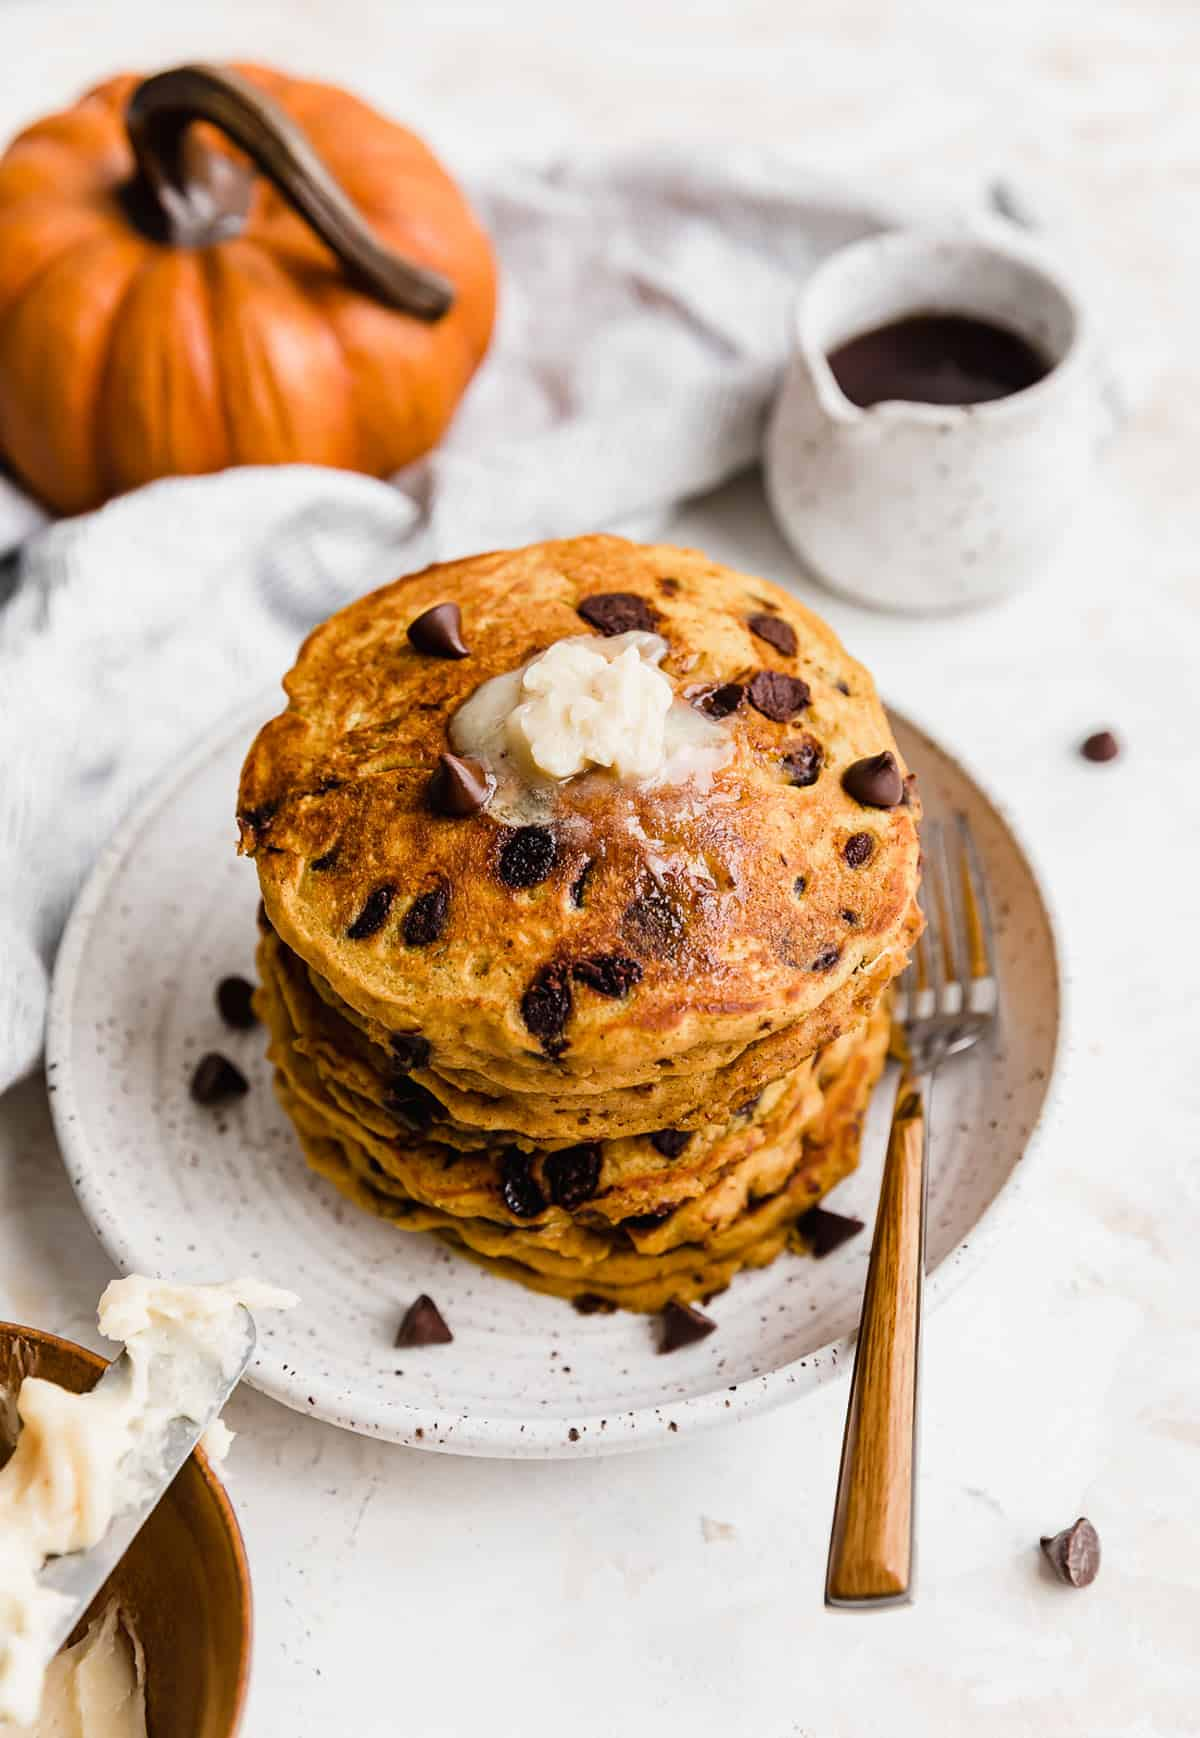 A stack of Pumpkin Chocolate Chip Pancakes on a white plate.